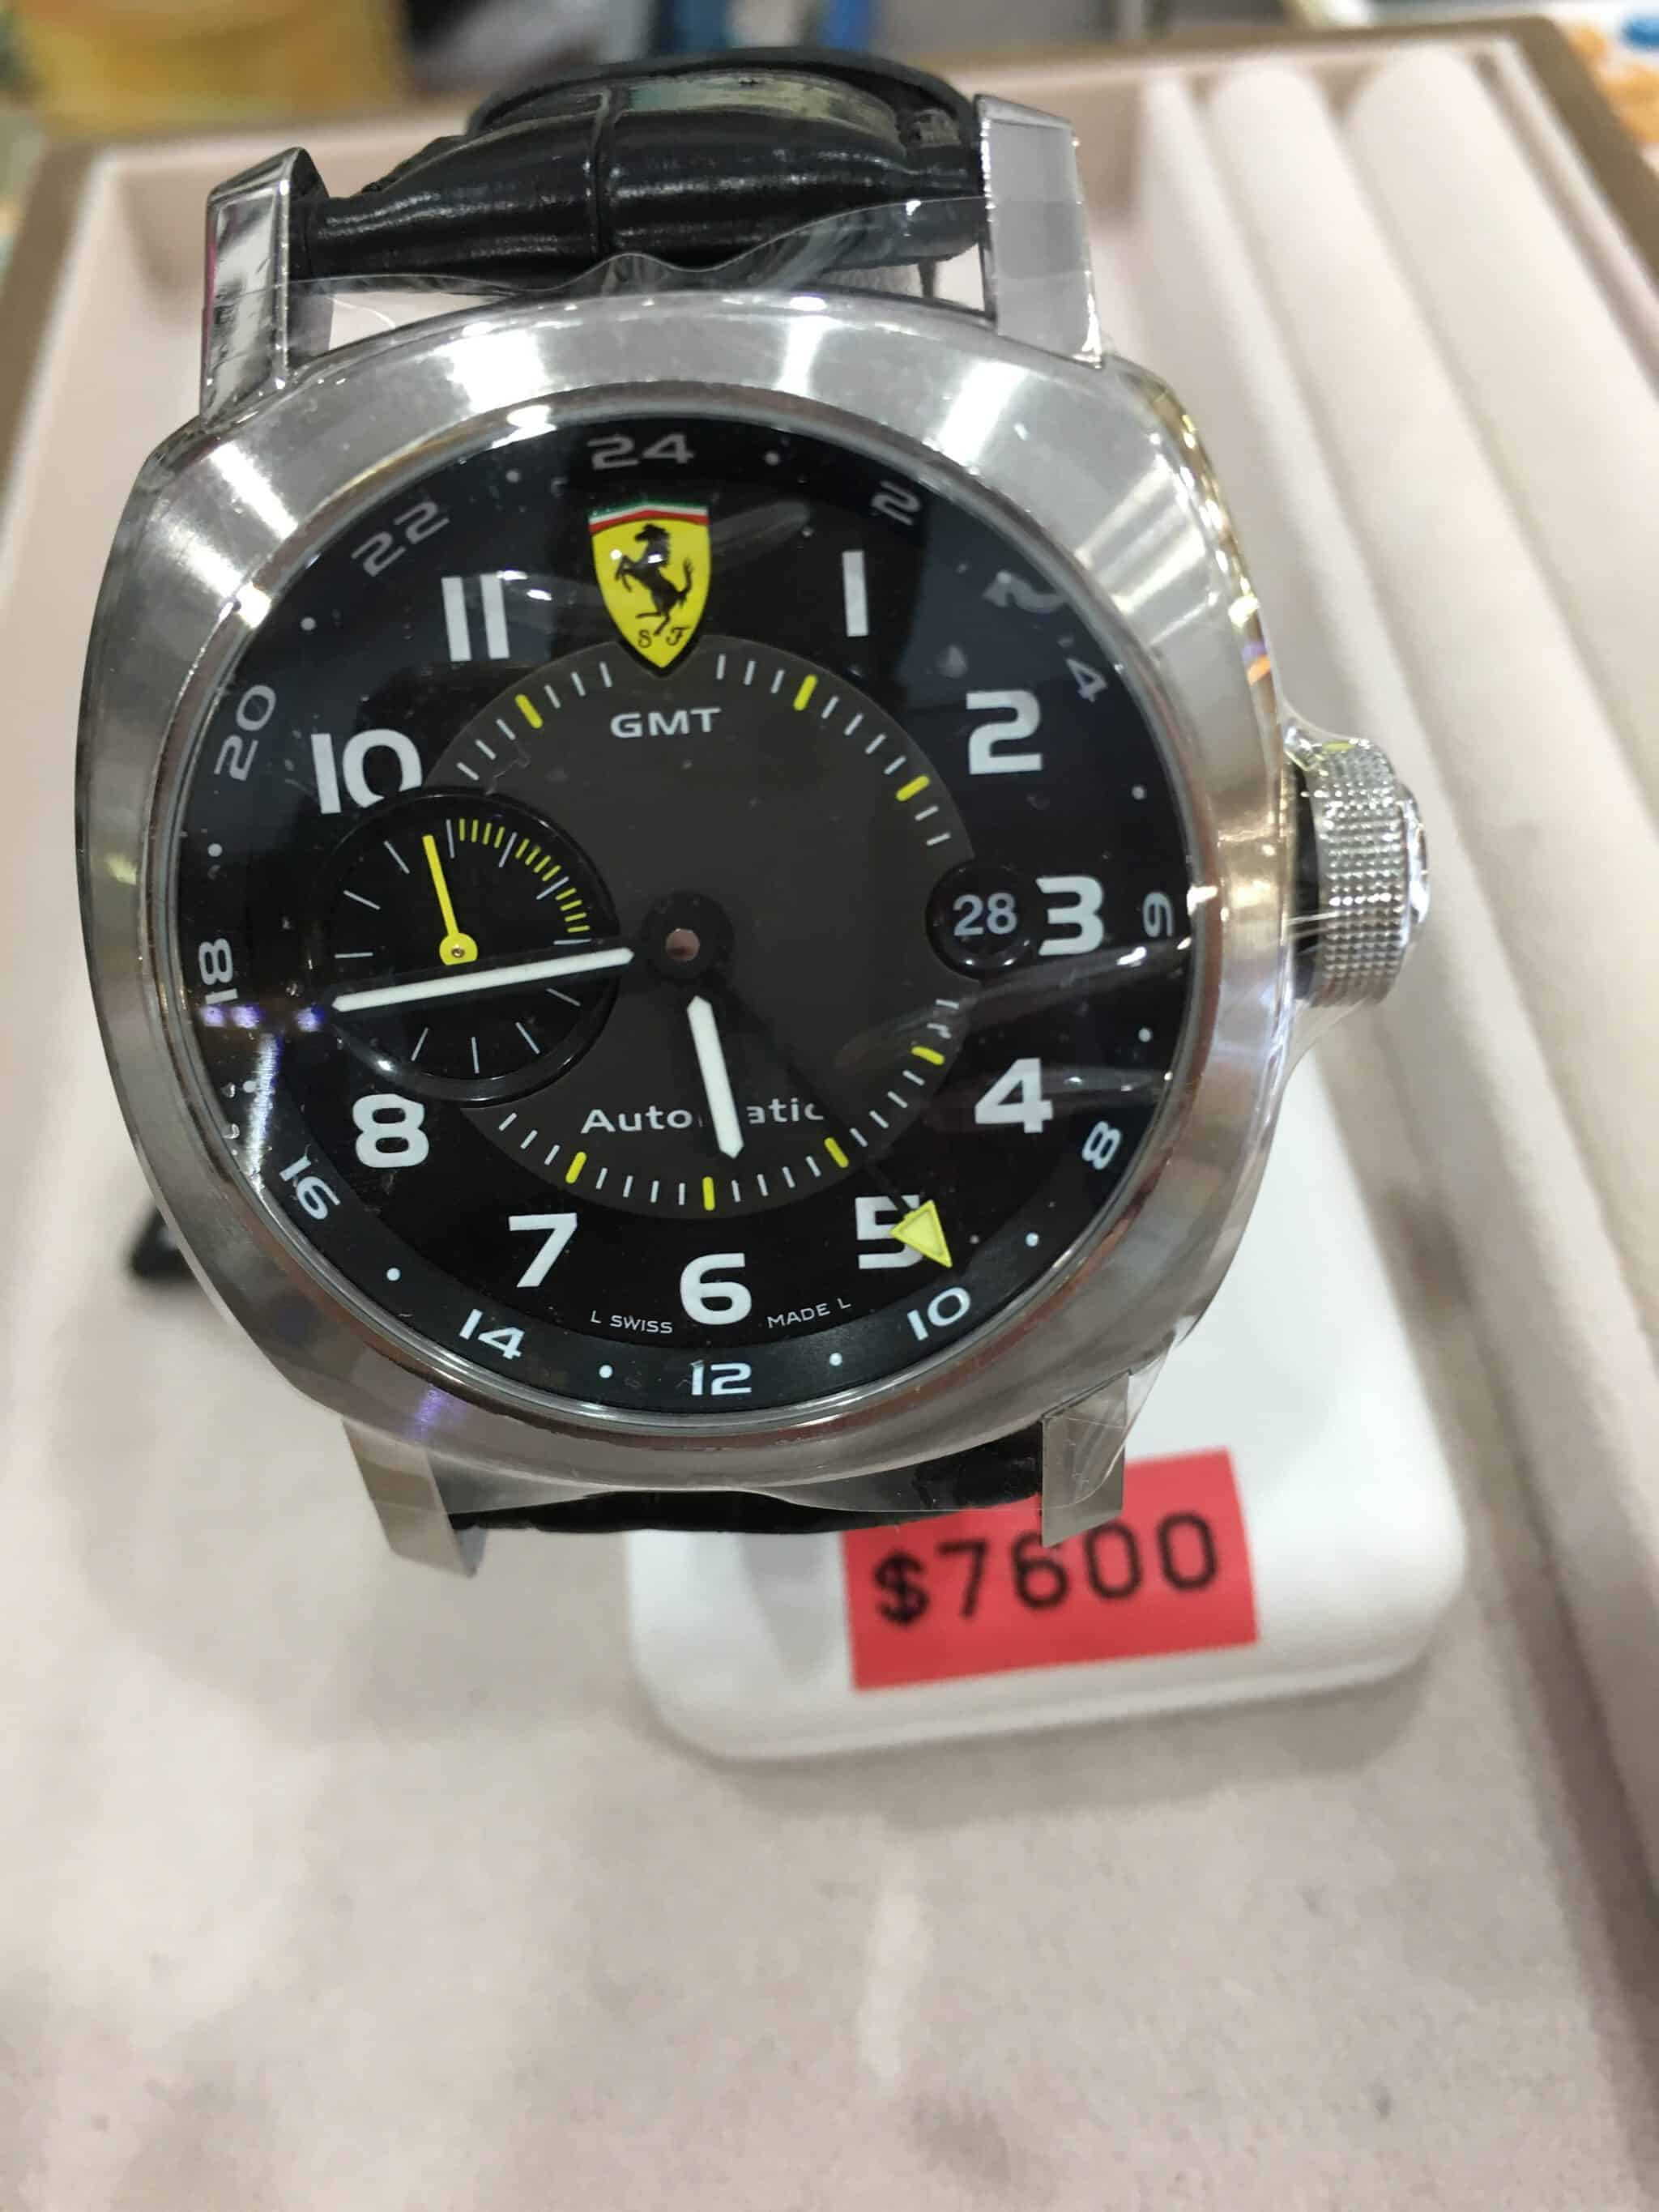 Panerai Ferrari Watch Buy And Sell Used Rolex Watches And Jewellery In Singapore